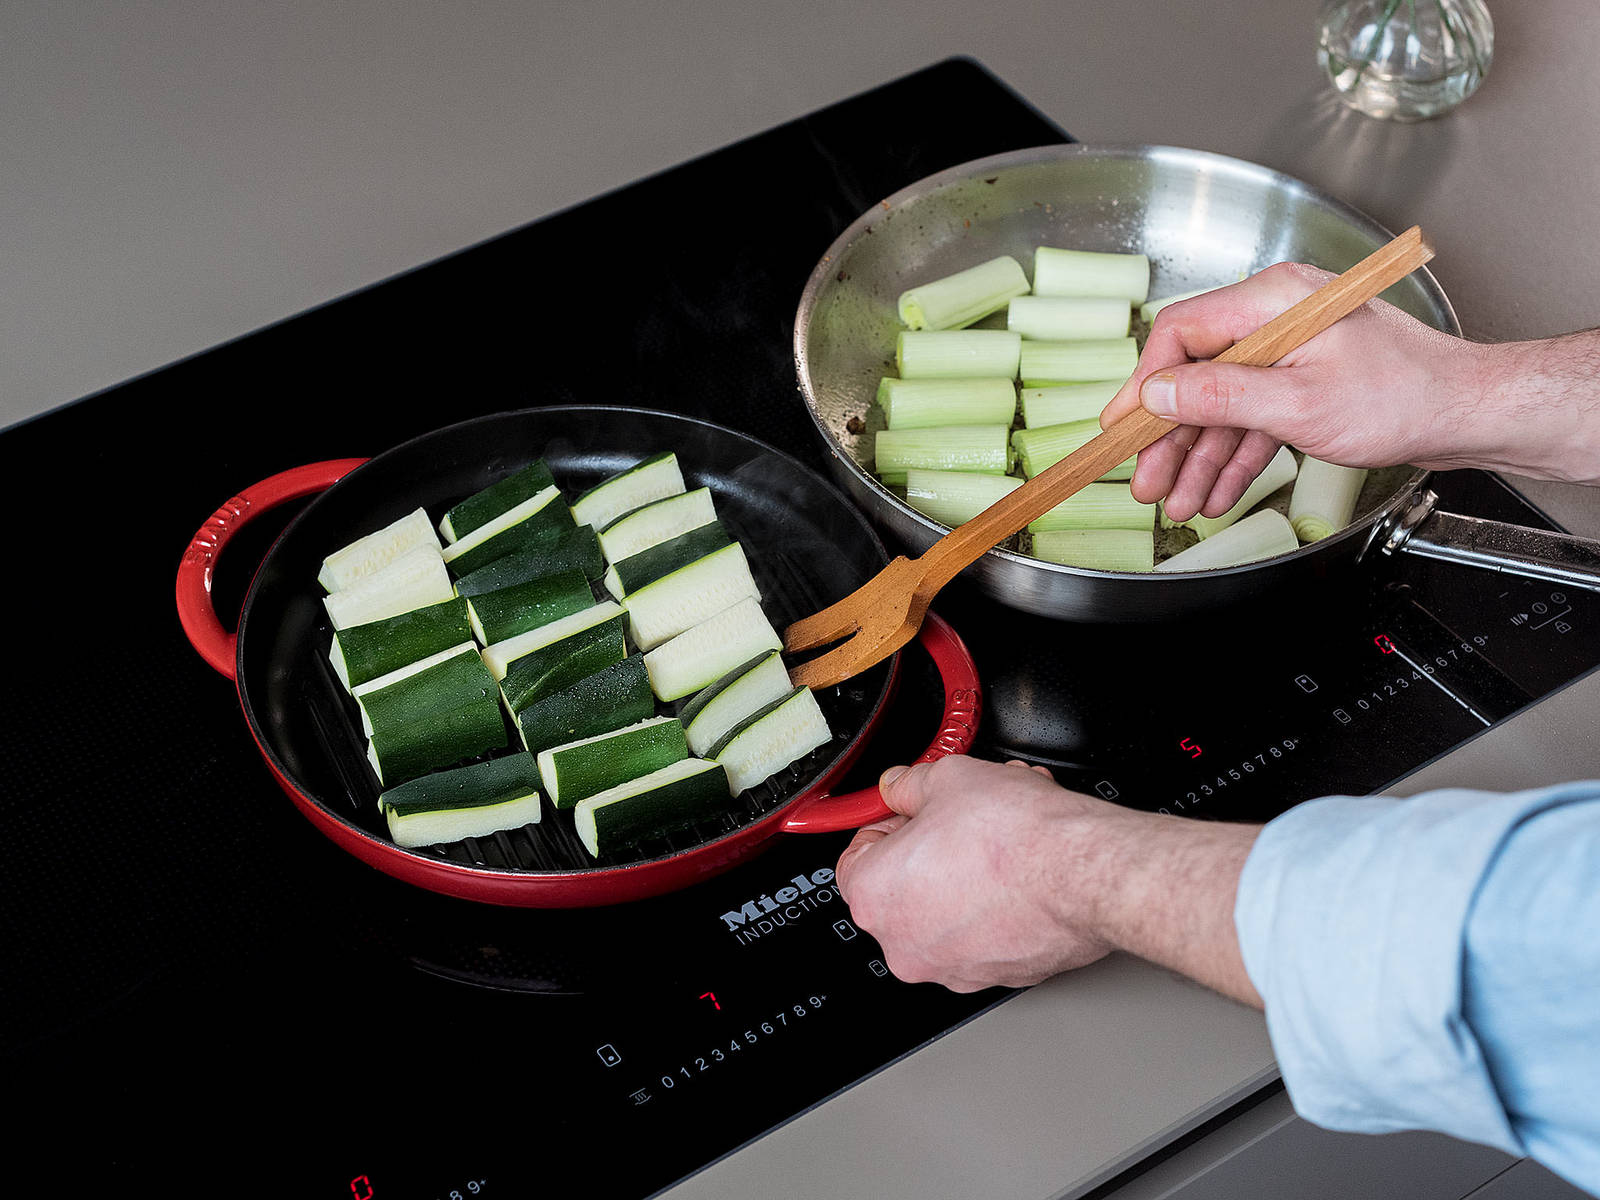 Cut leek into 5-cm/2-in. pieces and halve lenghtwise. In a frying pan, sauté for approx. 10 min., cut-side down, until they caramelize and char slightly, then flip and sauté for a few minutes on the other side, until softened. Set aside.